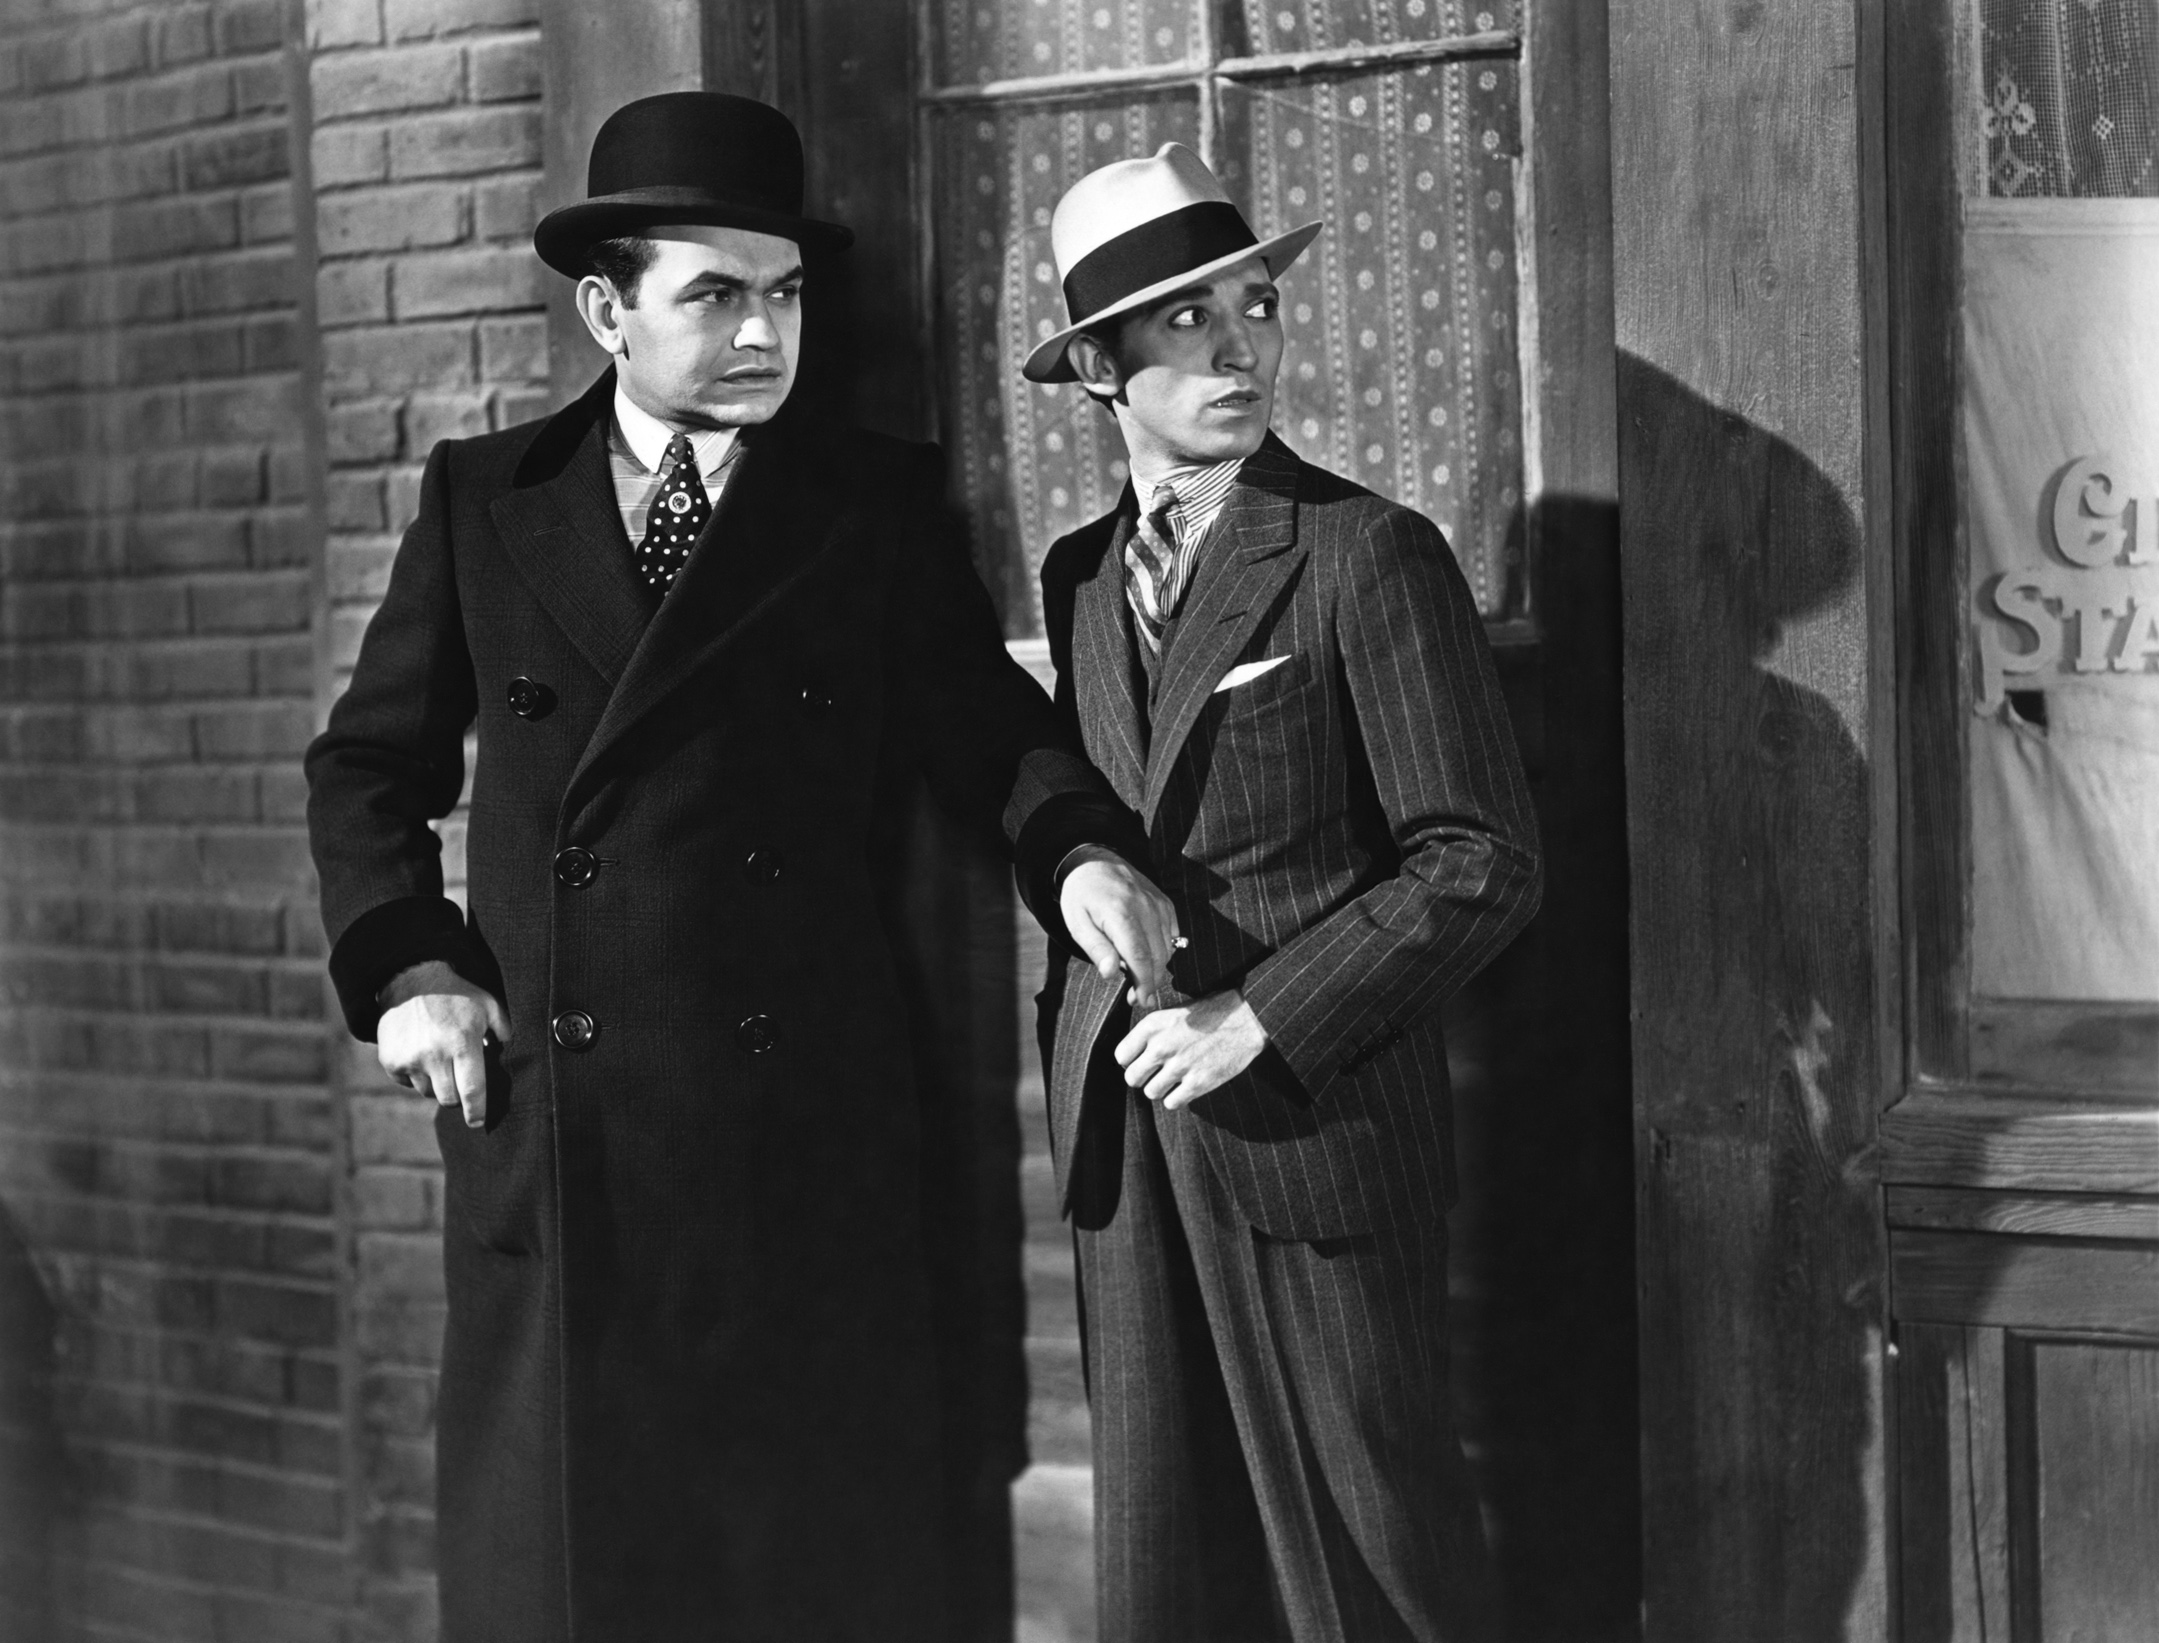 films with gangster genres in 1930s in america Conventions of the gangster film genre mervyn leroy's little caesar was released in 1930 and became an immensely popular film which had many imitators.